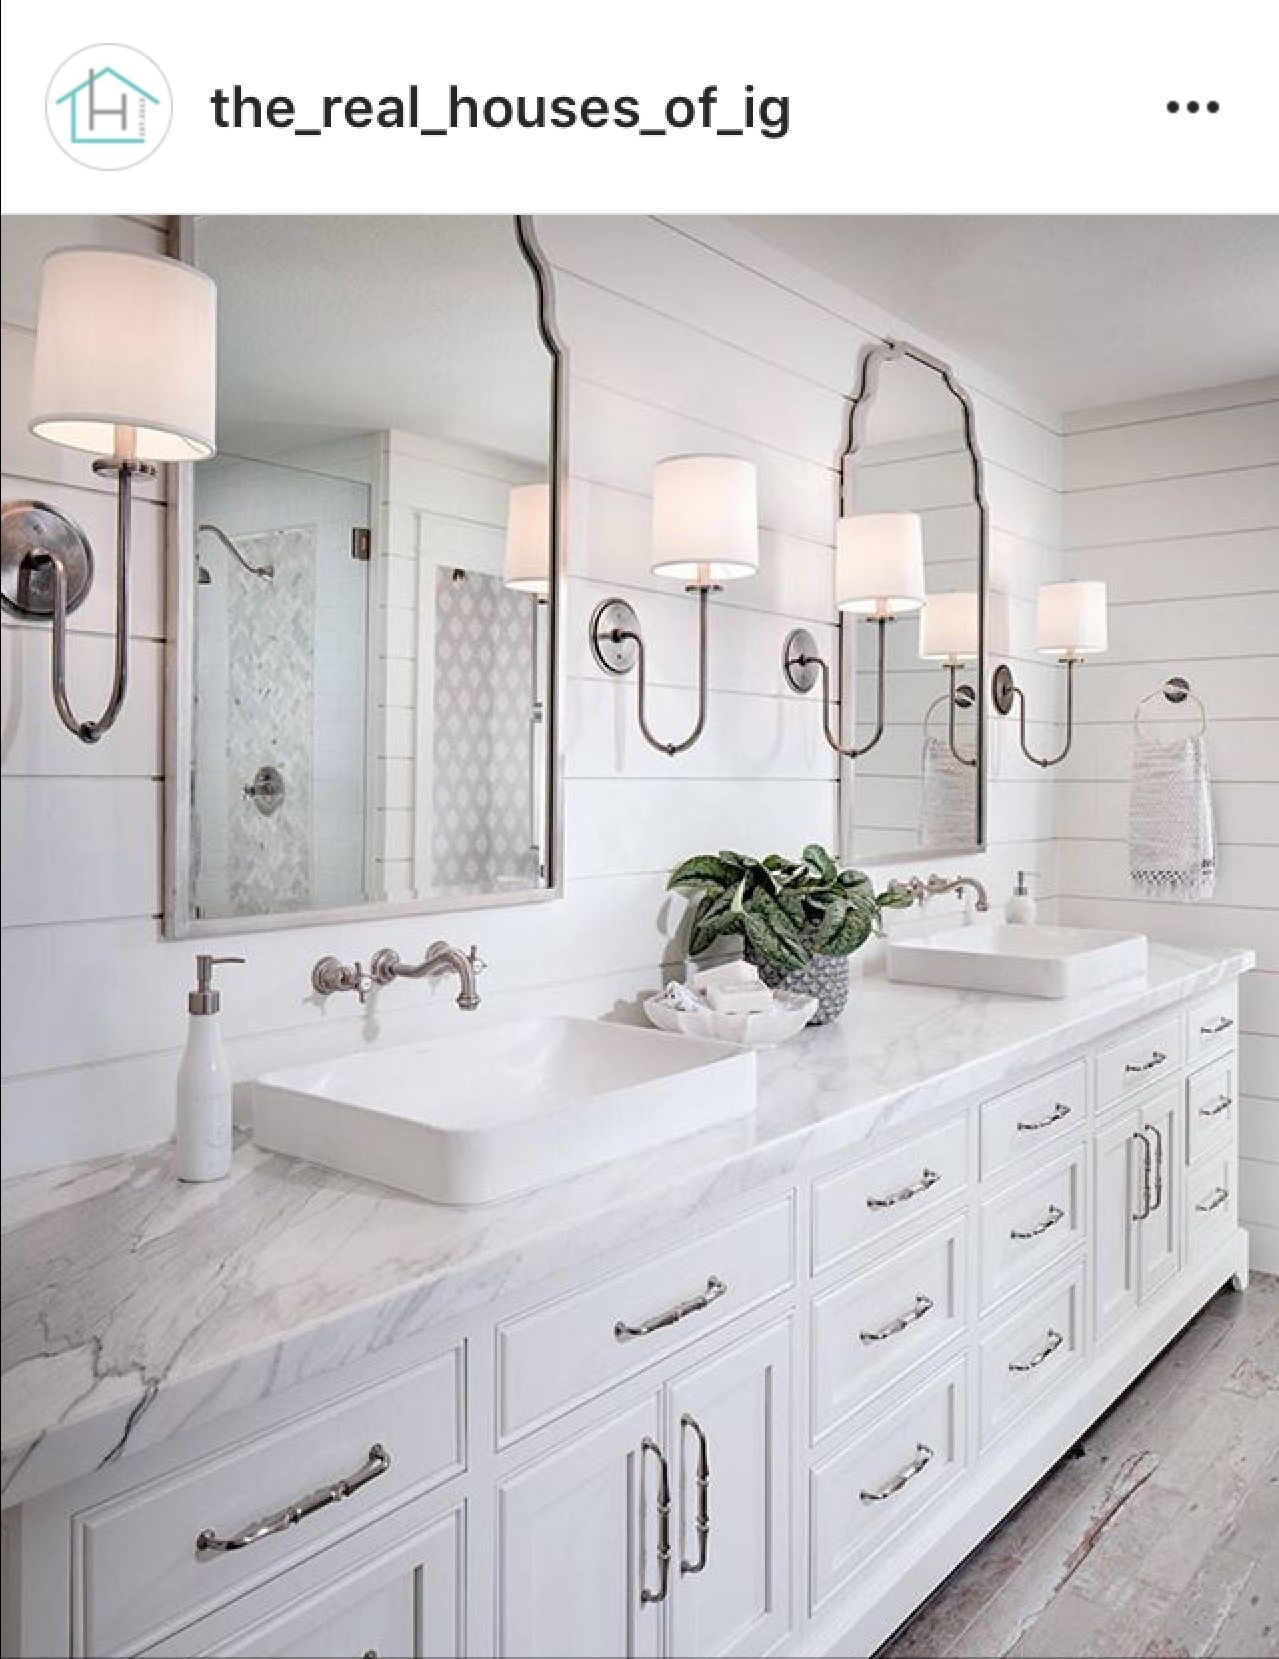 Shiplap Behind Mirrors, Carrara Counters, Wall Mount Faucet, 2 Cool Mirrors